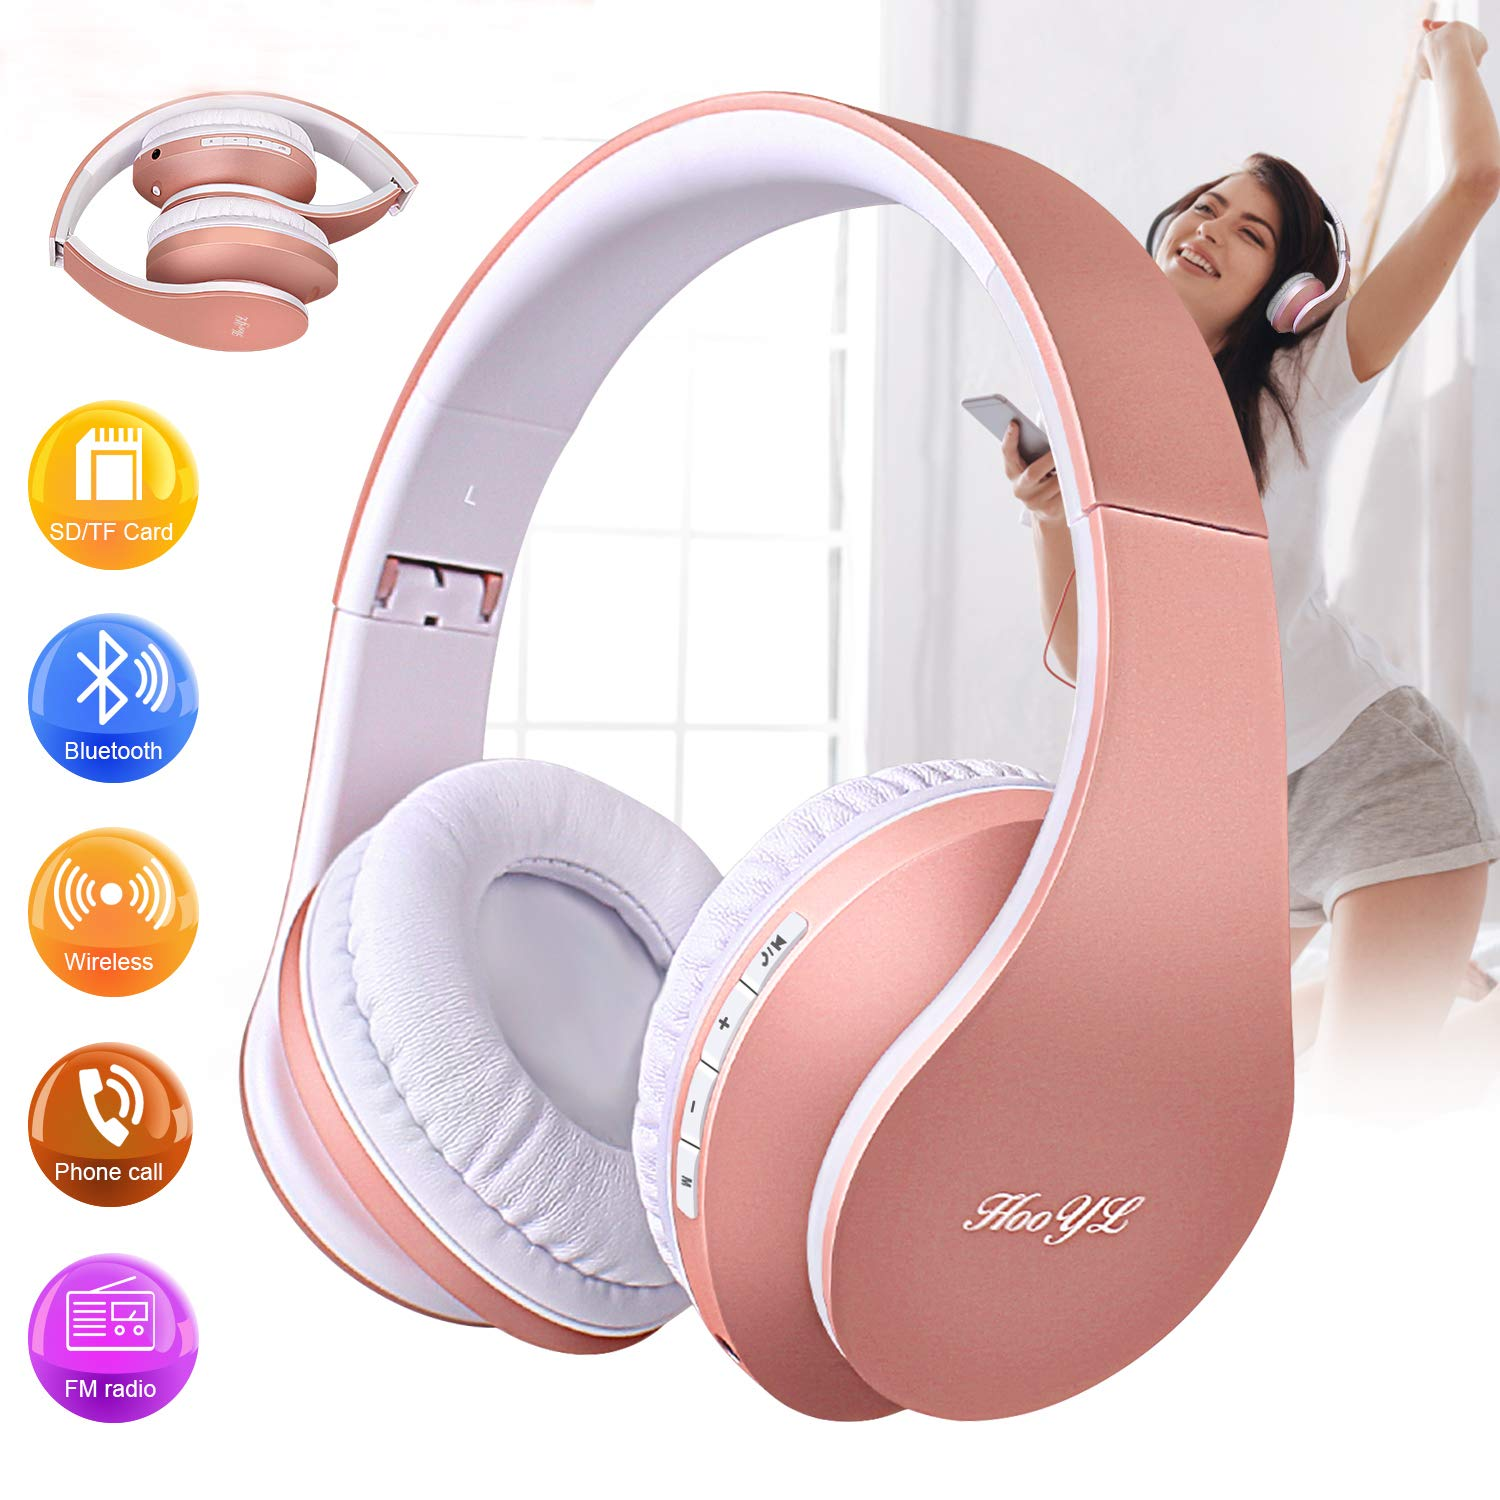 Over Ear Headphones, Bluetooth Wireless Headphone Rose Gold with Mic Foldable Earmuffs Headsets Hi-Fi Stereo Headset Wired and Wireless Mode for Girl Women Cell Phone iPhone Laptop TV PC Computer